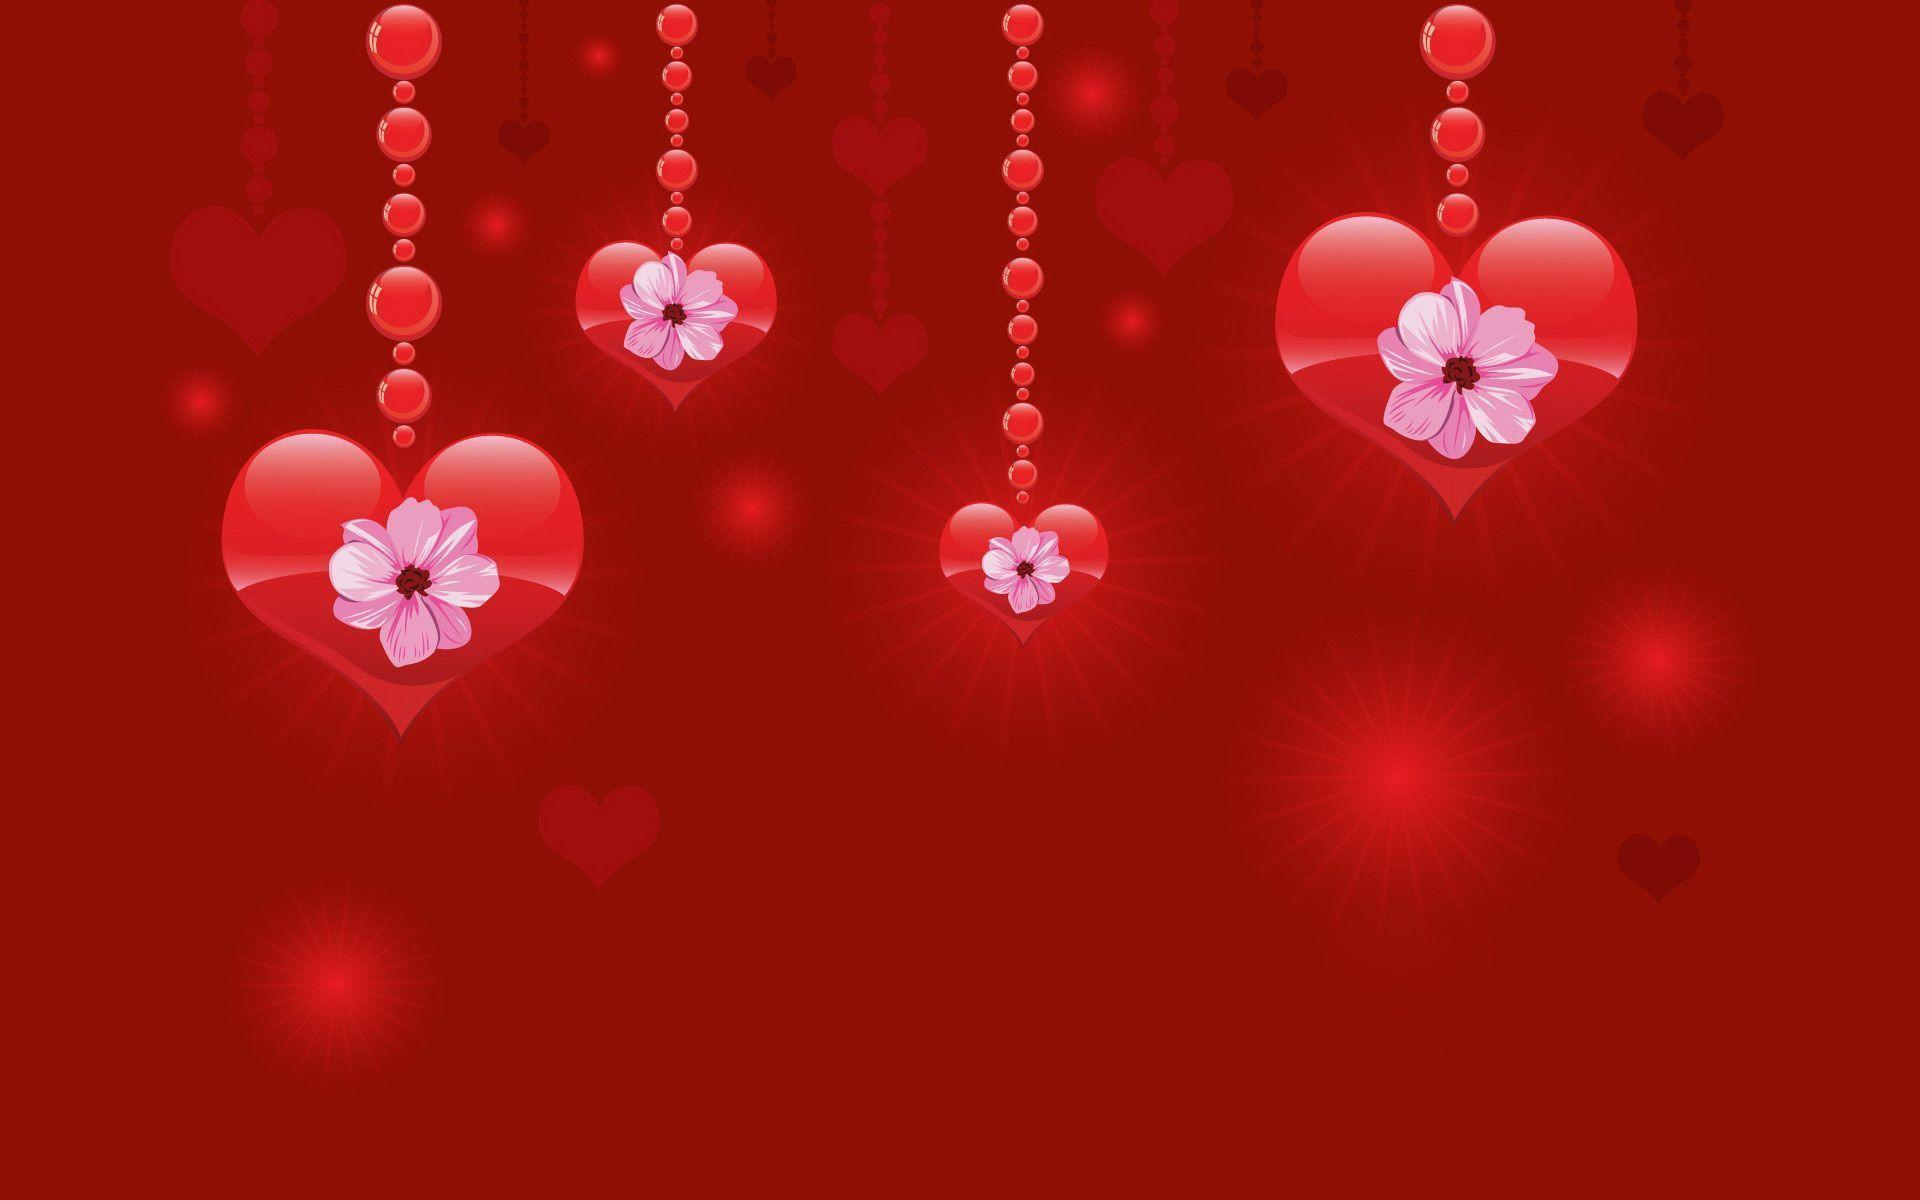 Enjoy these lovely Valentine&Day themed wallpapers for your Android